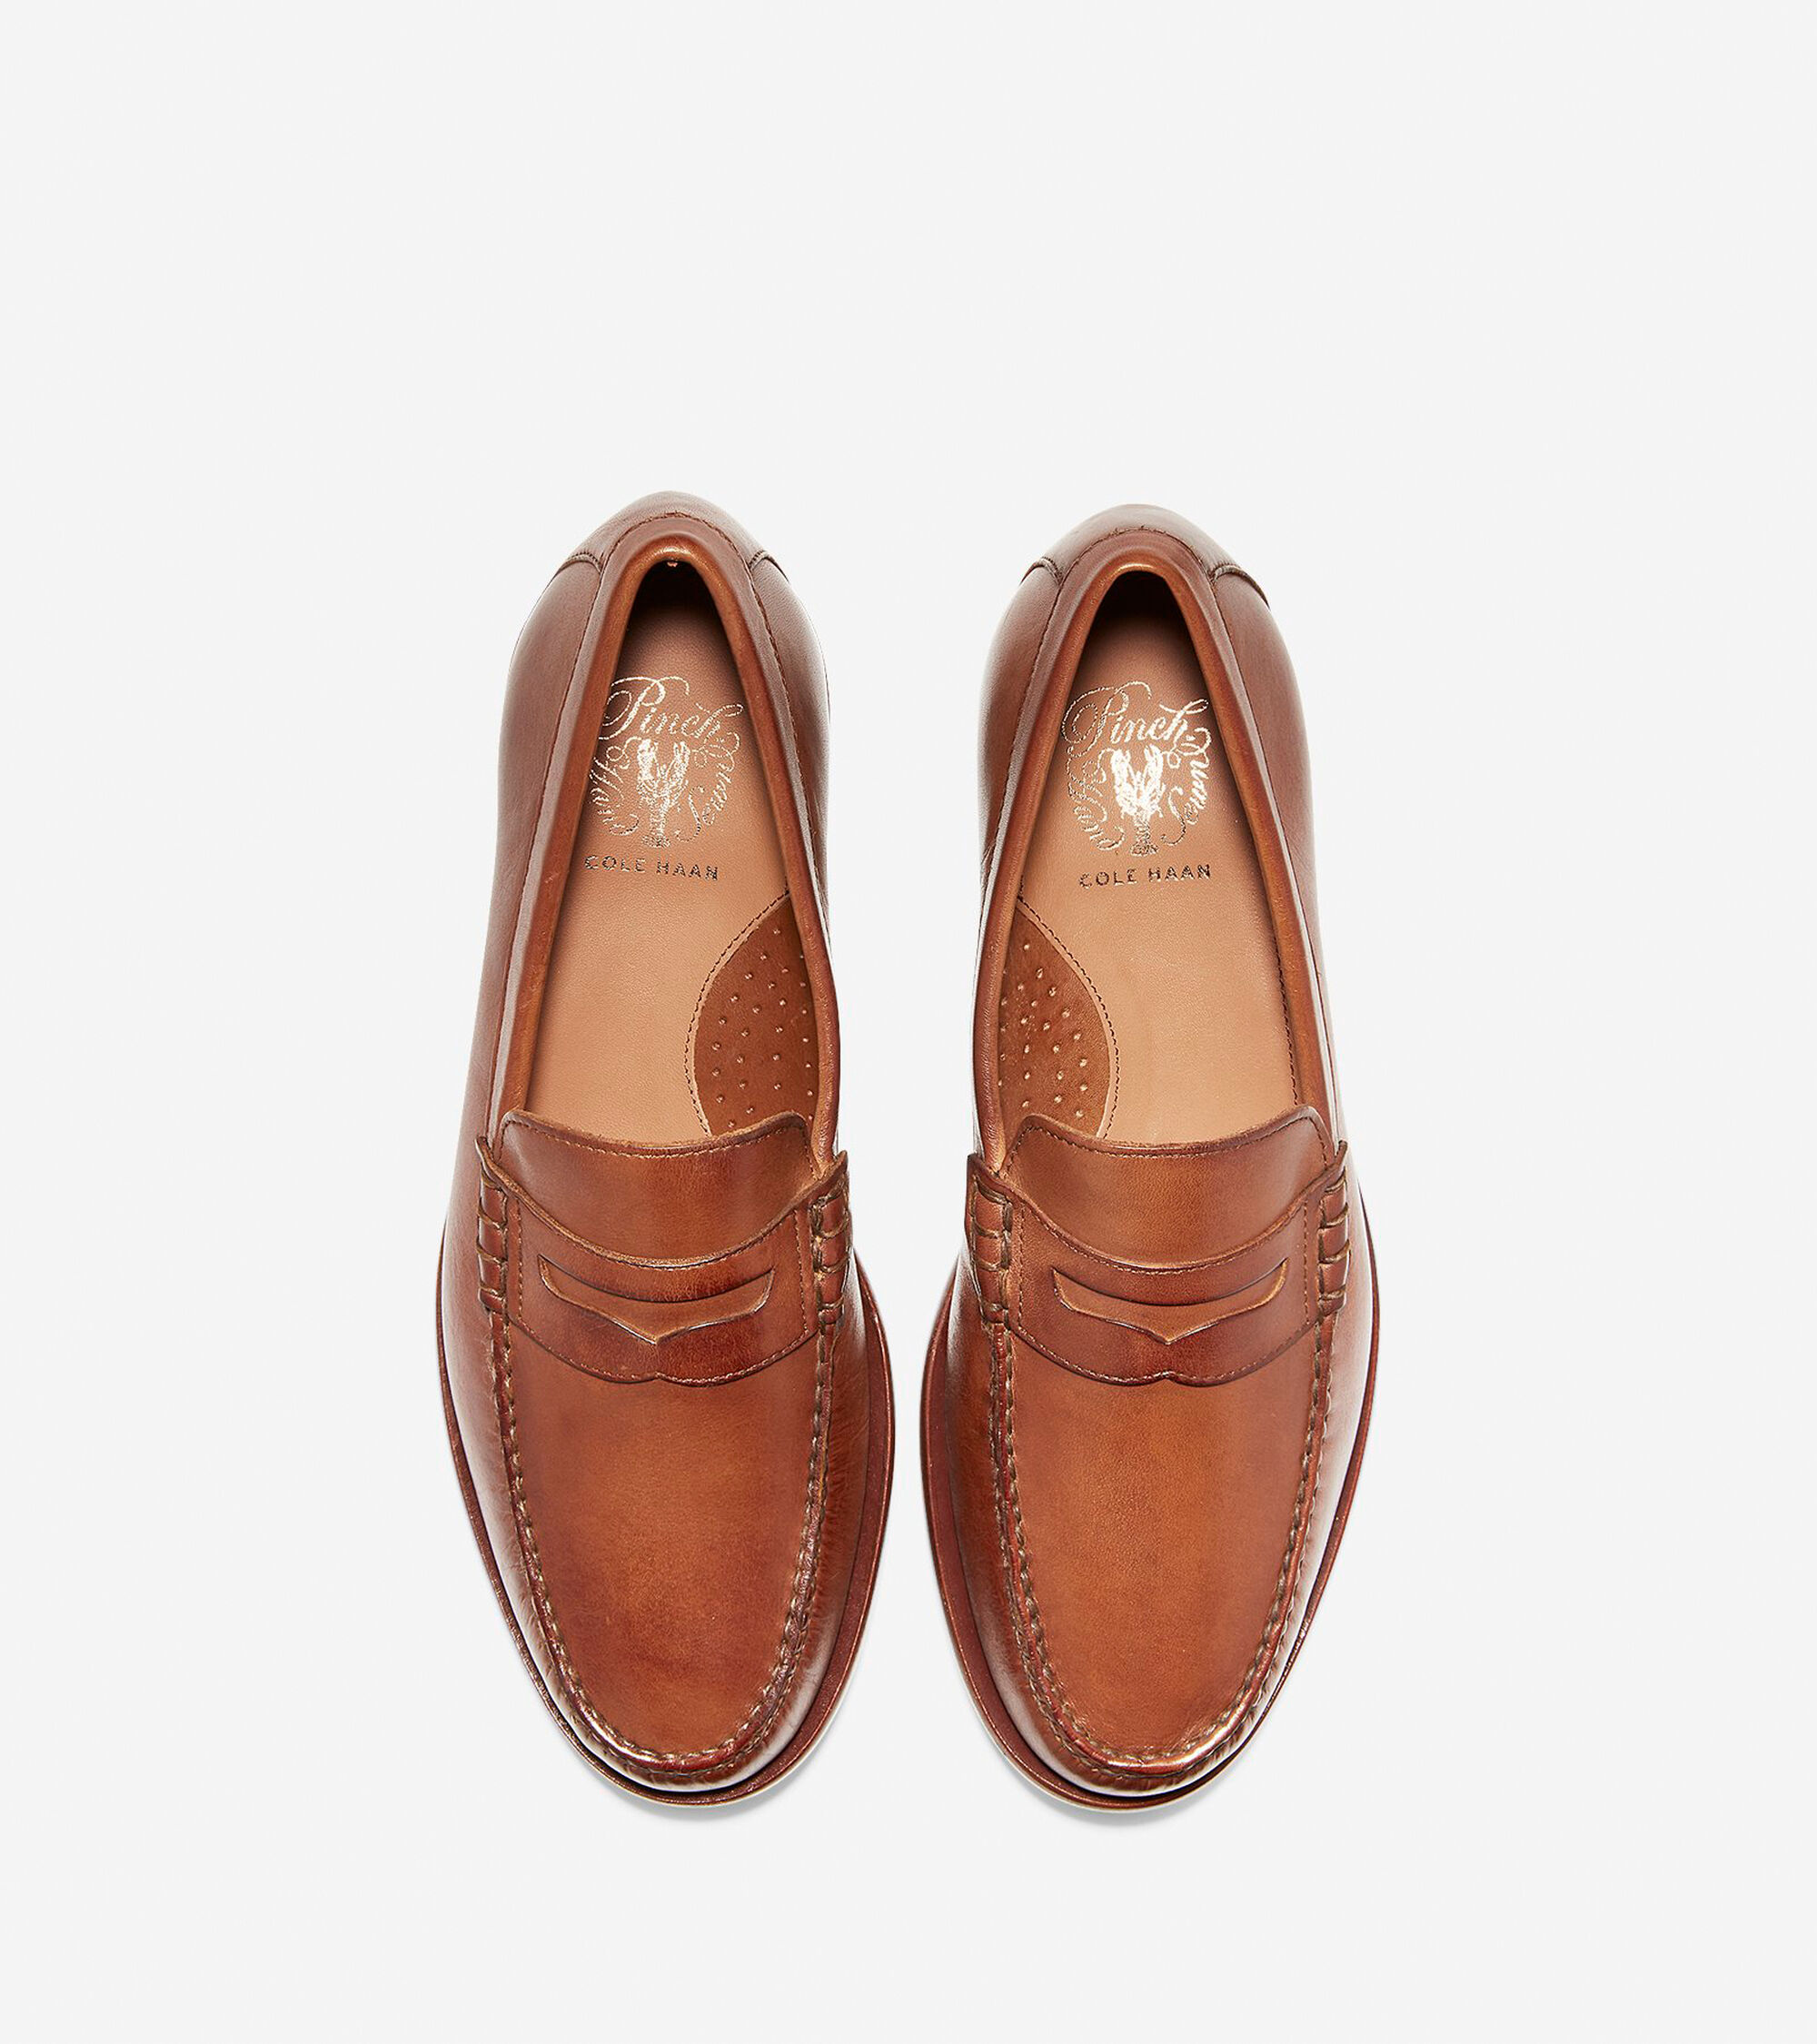 f132aba212ef Men s Pinch Handsewn Penny Loafers in British Tan